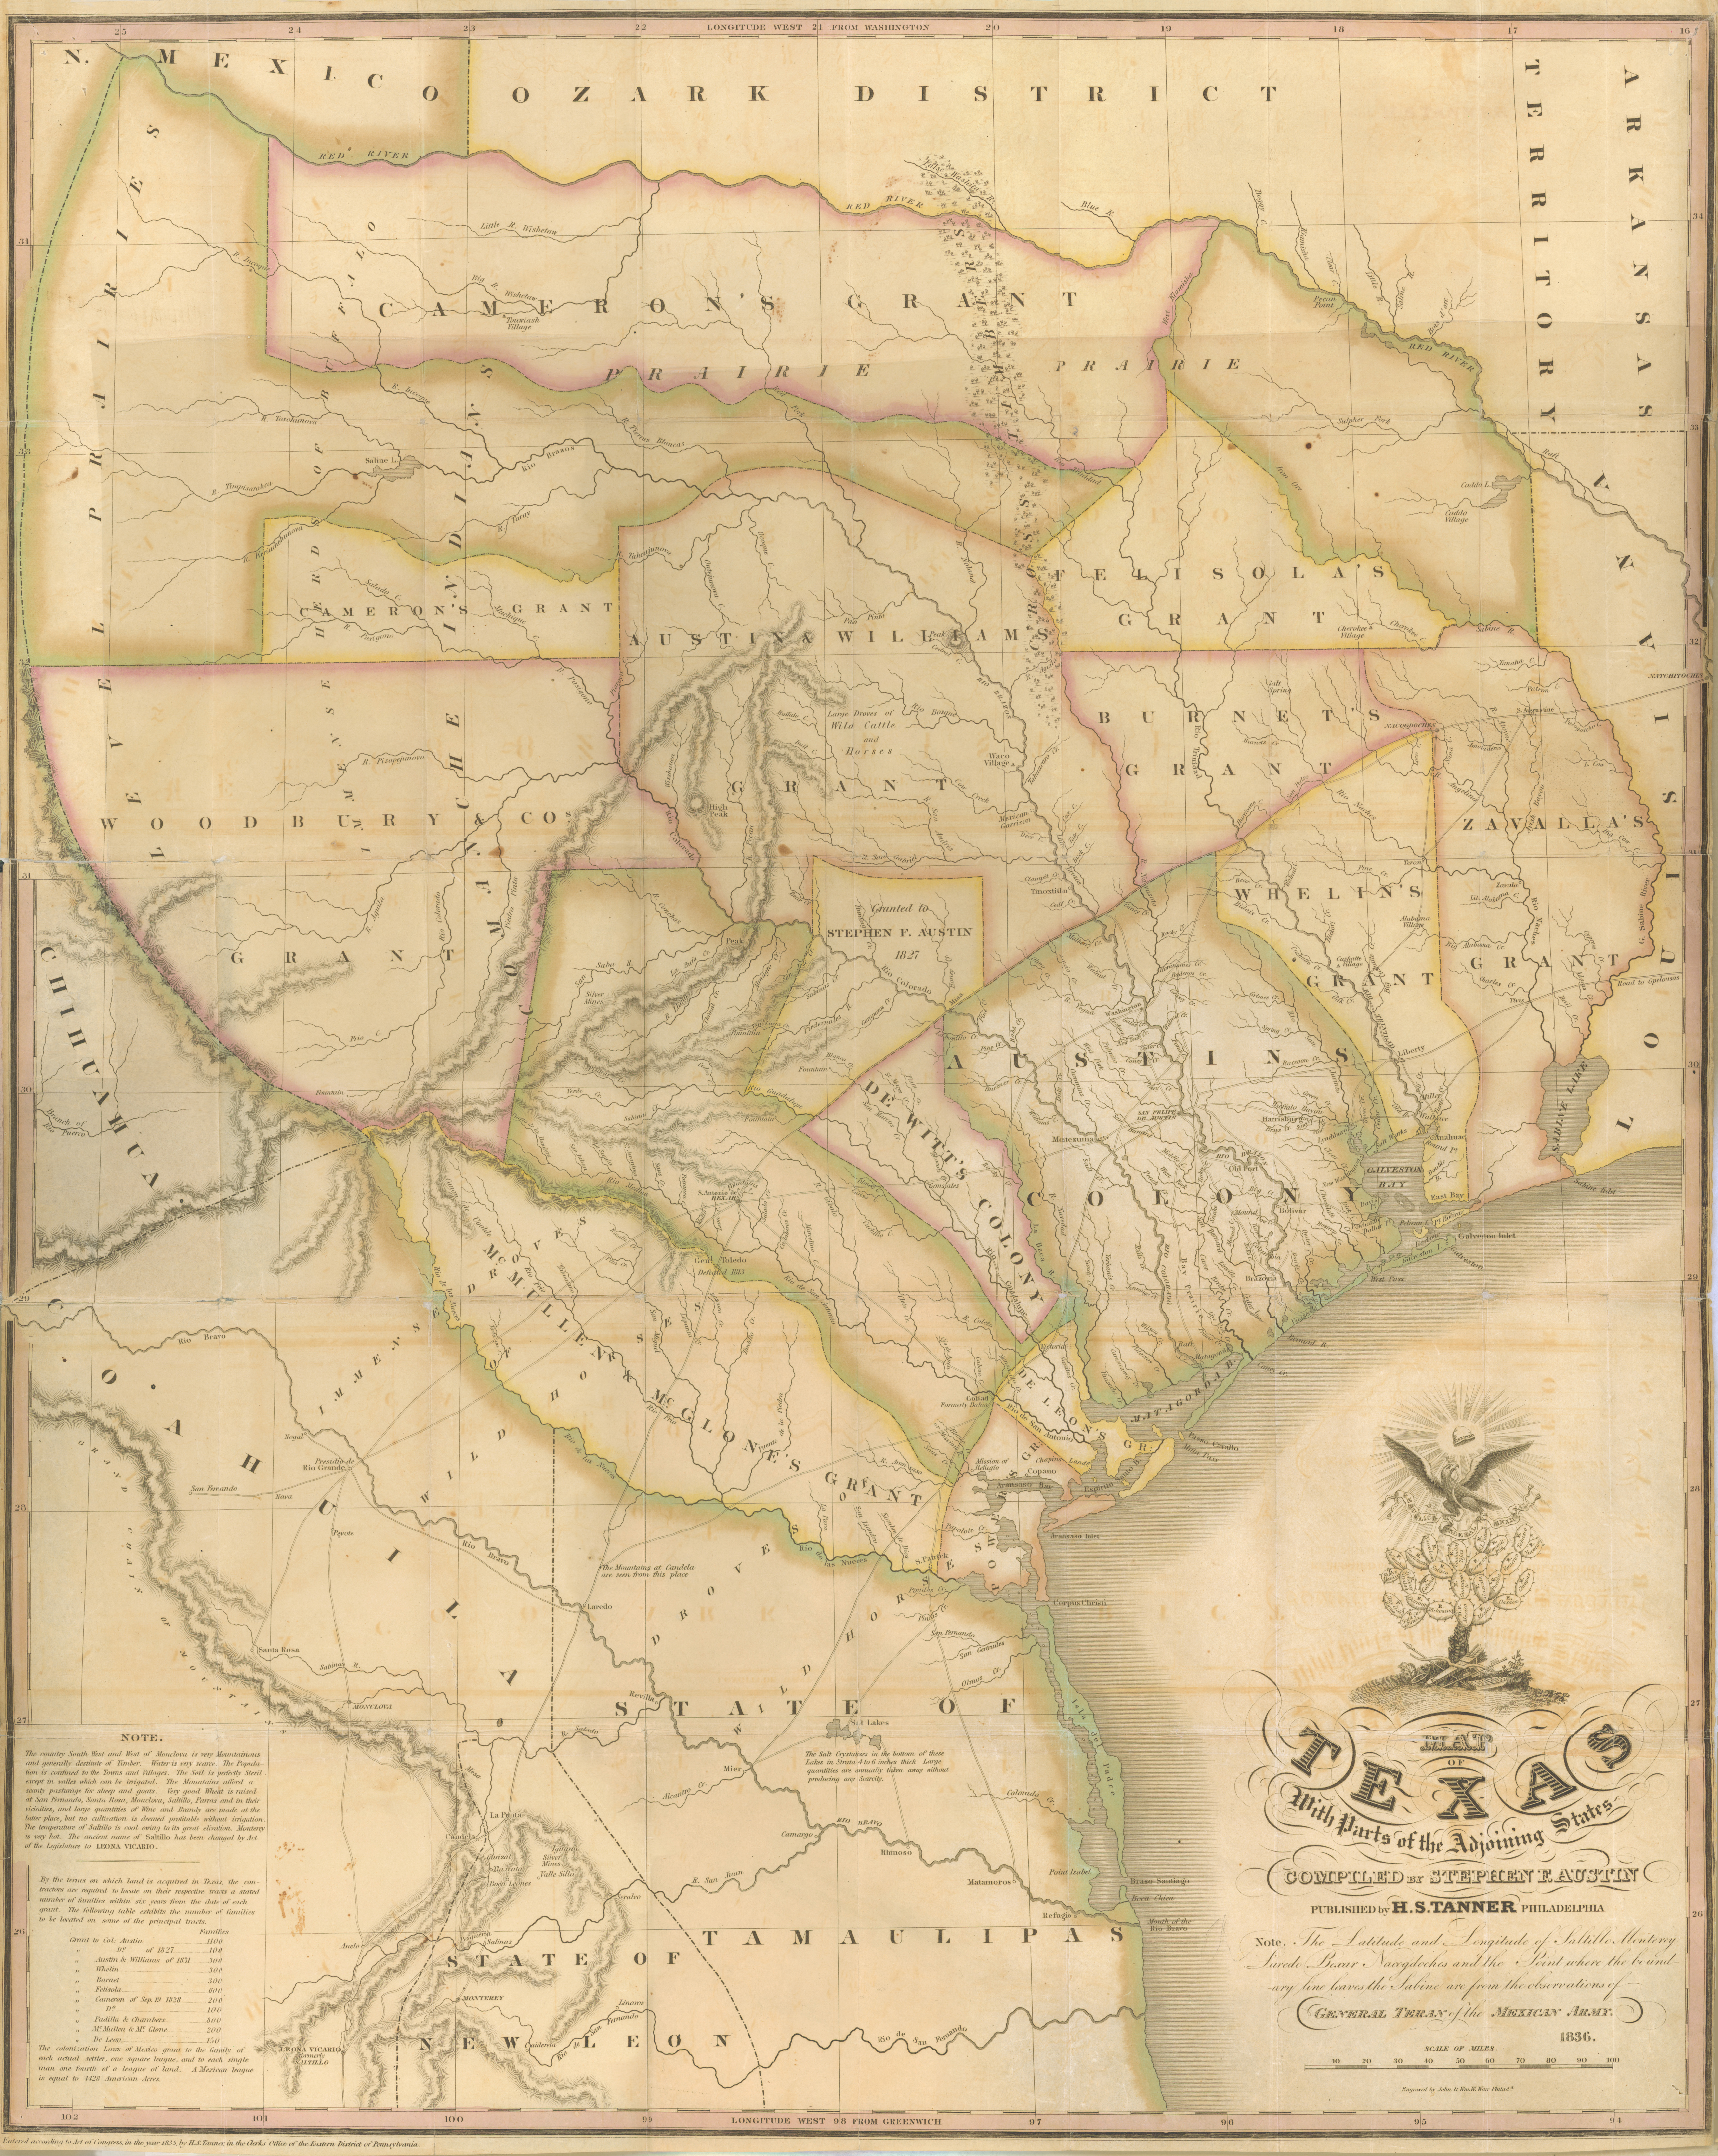 Map Of Texas Showing Austin.File Austin Tanner Map Of Texas With Parts Of The